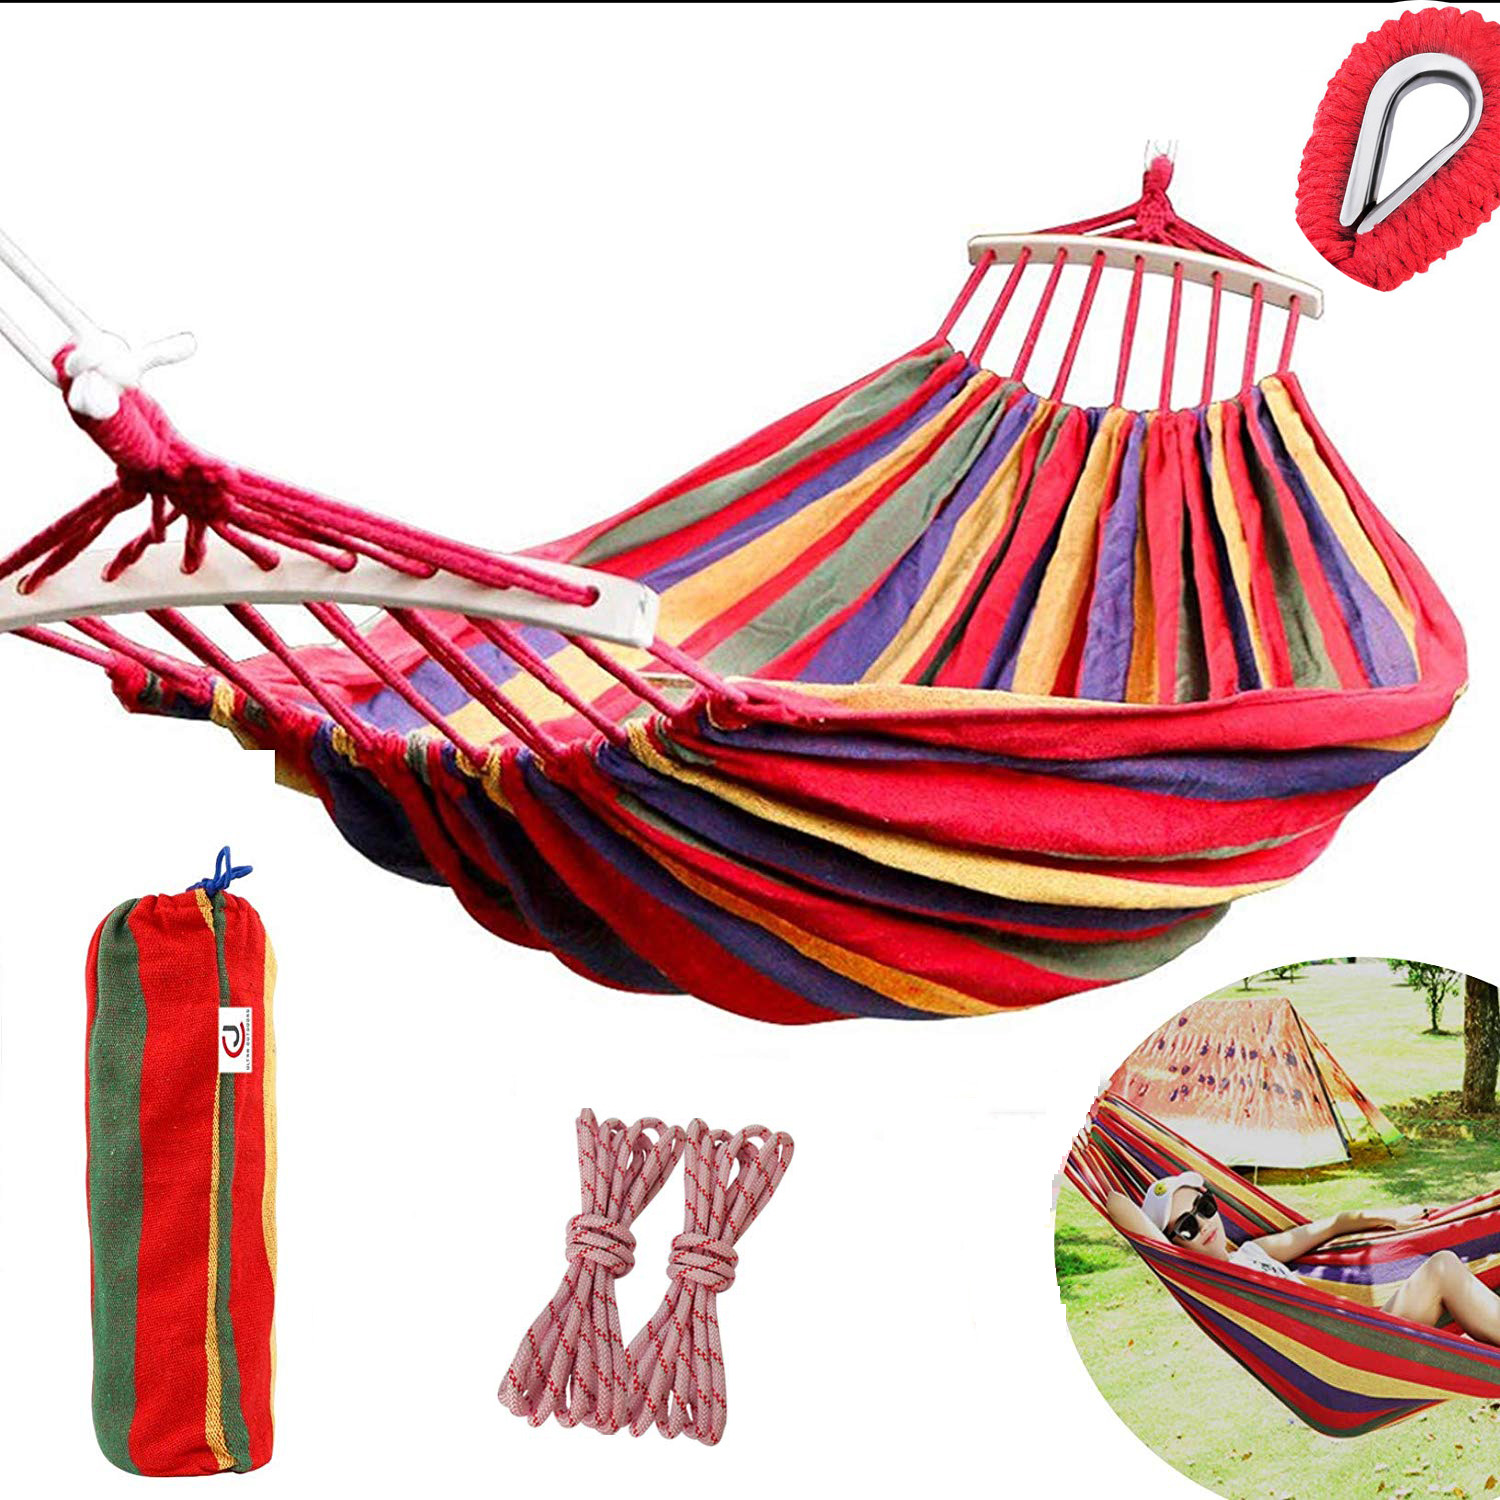 Fine 190x150cm Double Camping Hammock Tent Outdoor Sleeping Swing Hammock Thick Canvas Hanging Bed Lazy Chair For Patio Yard Garden Fixing Prices According To Quality Of Products